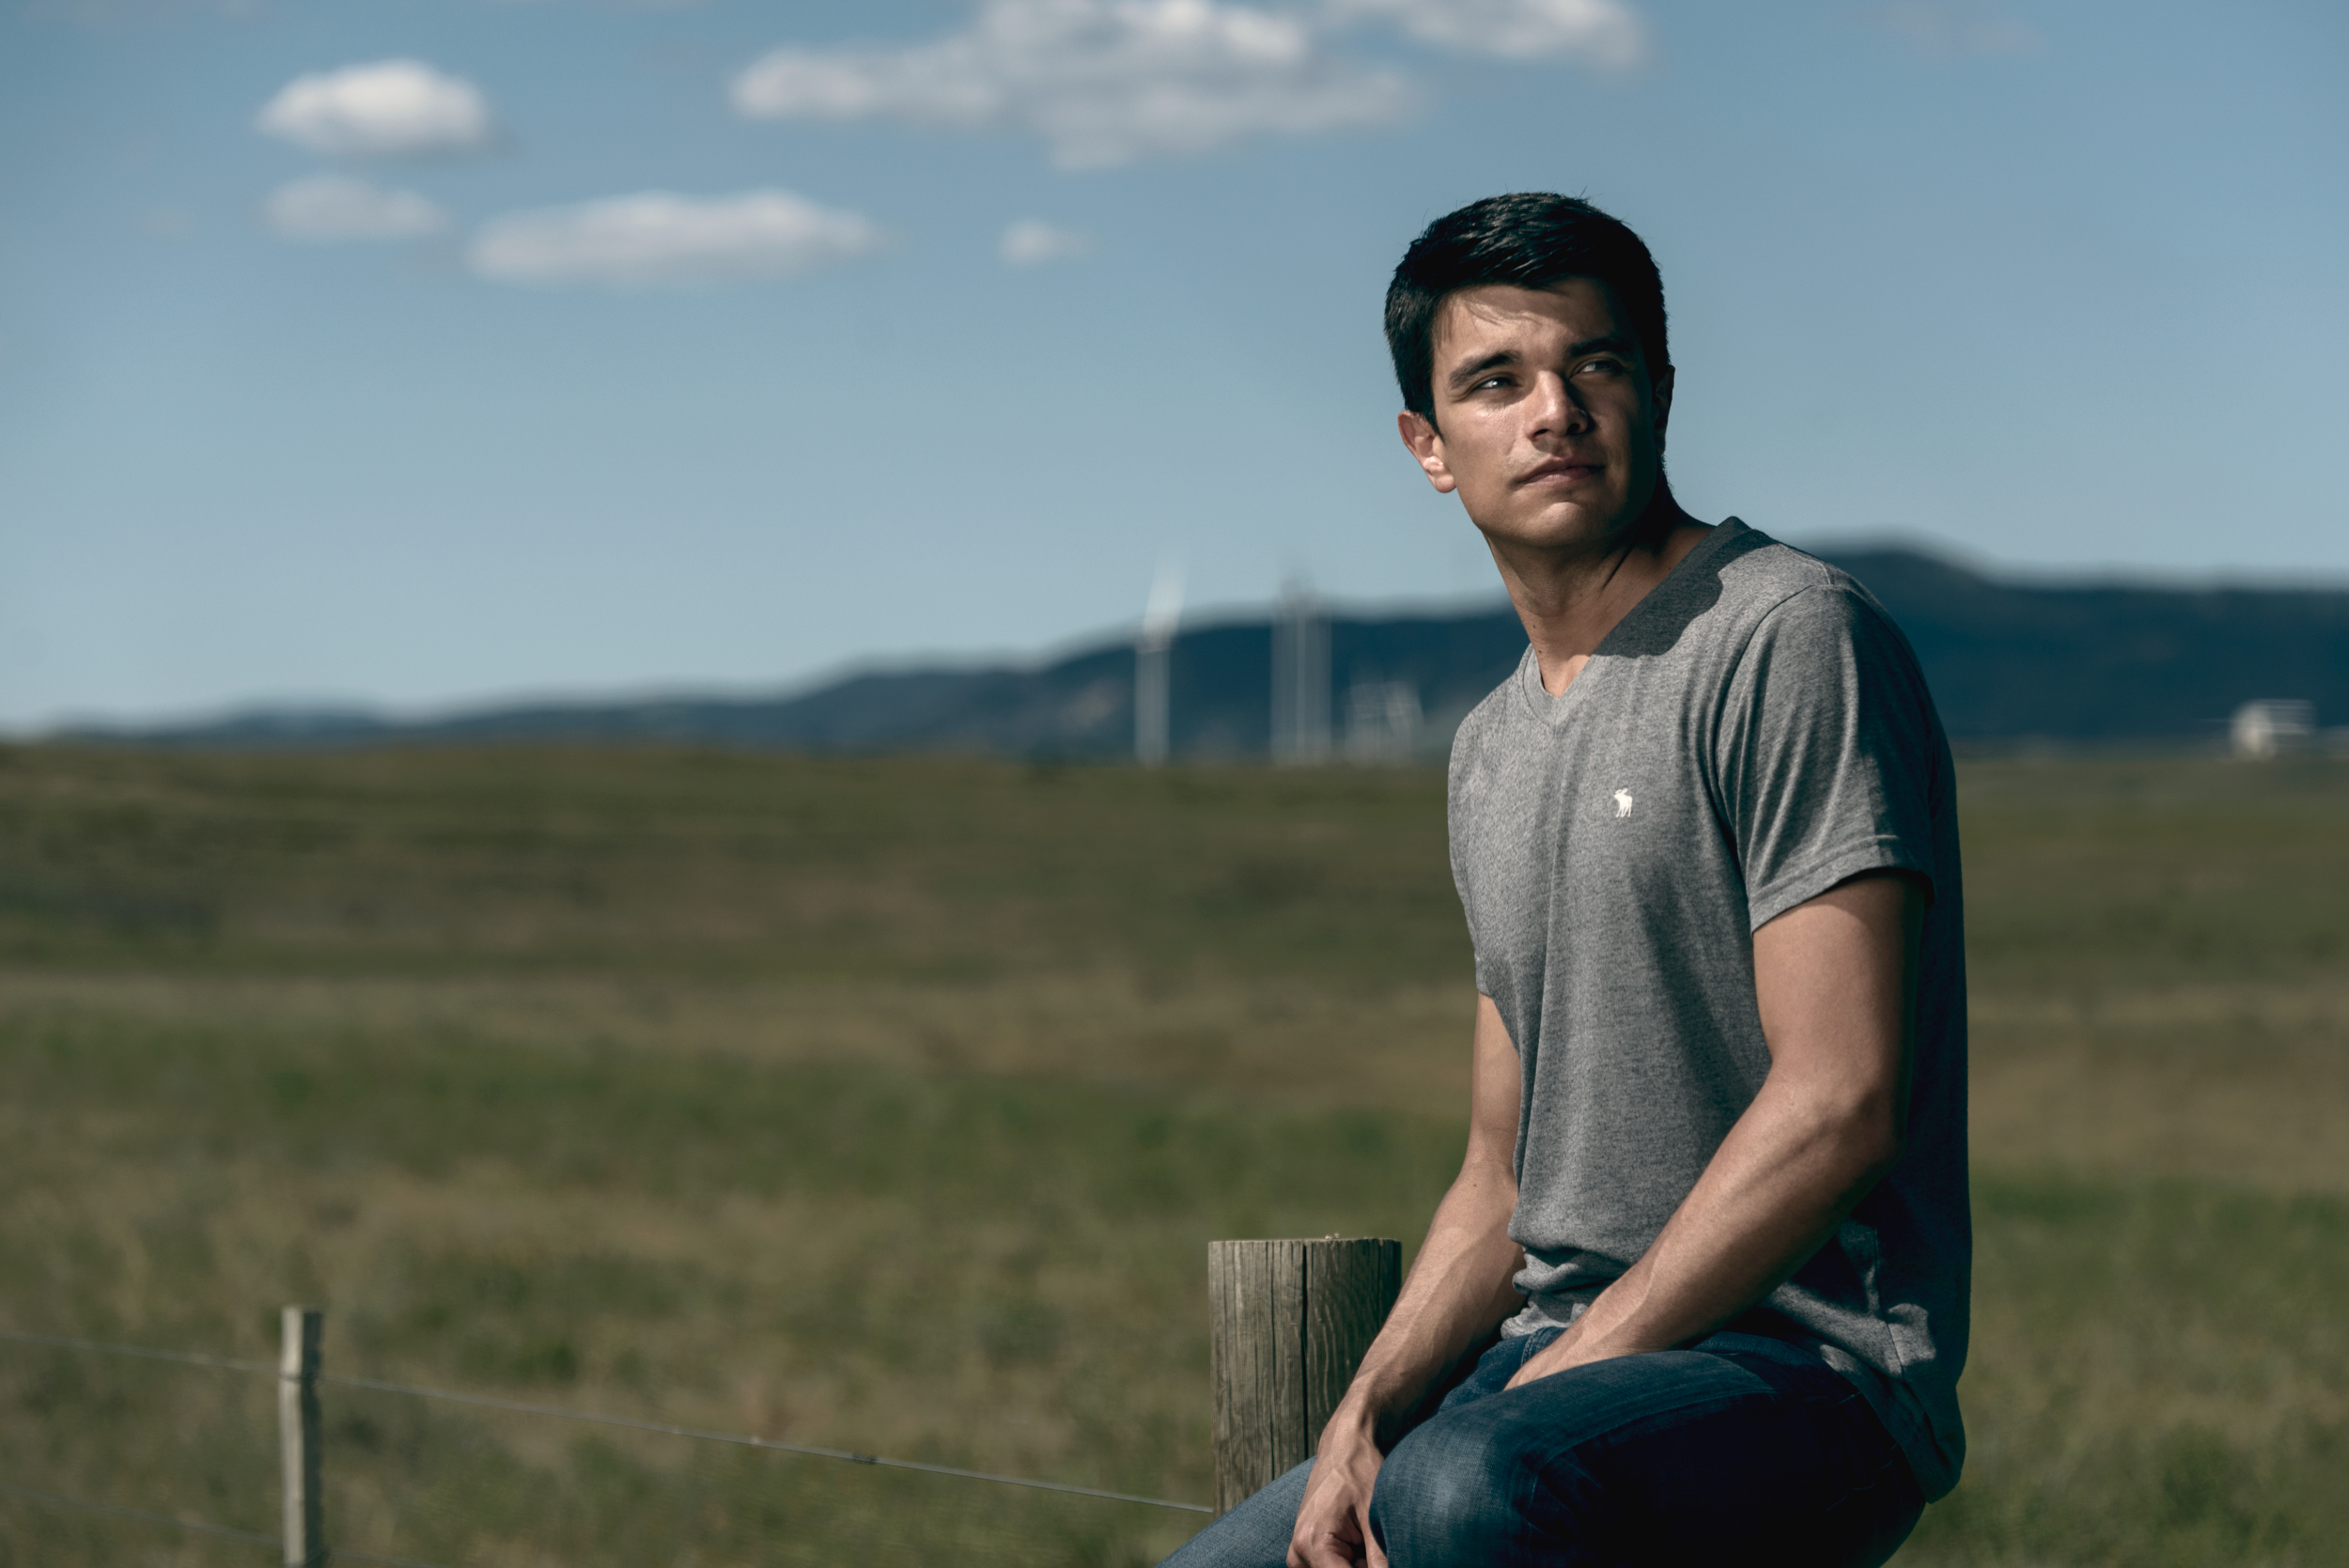 Mens' Fashion Lifestyle advertising image featuring Abercrombie & Fitch